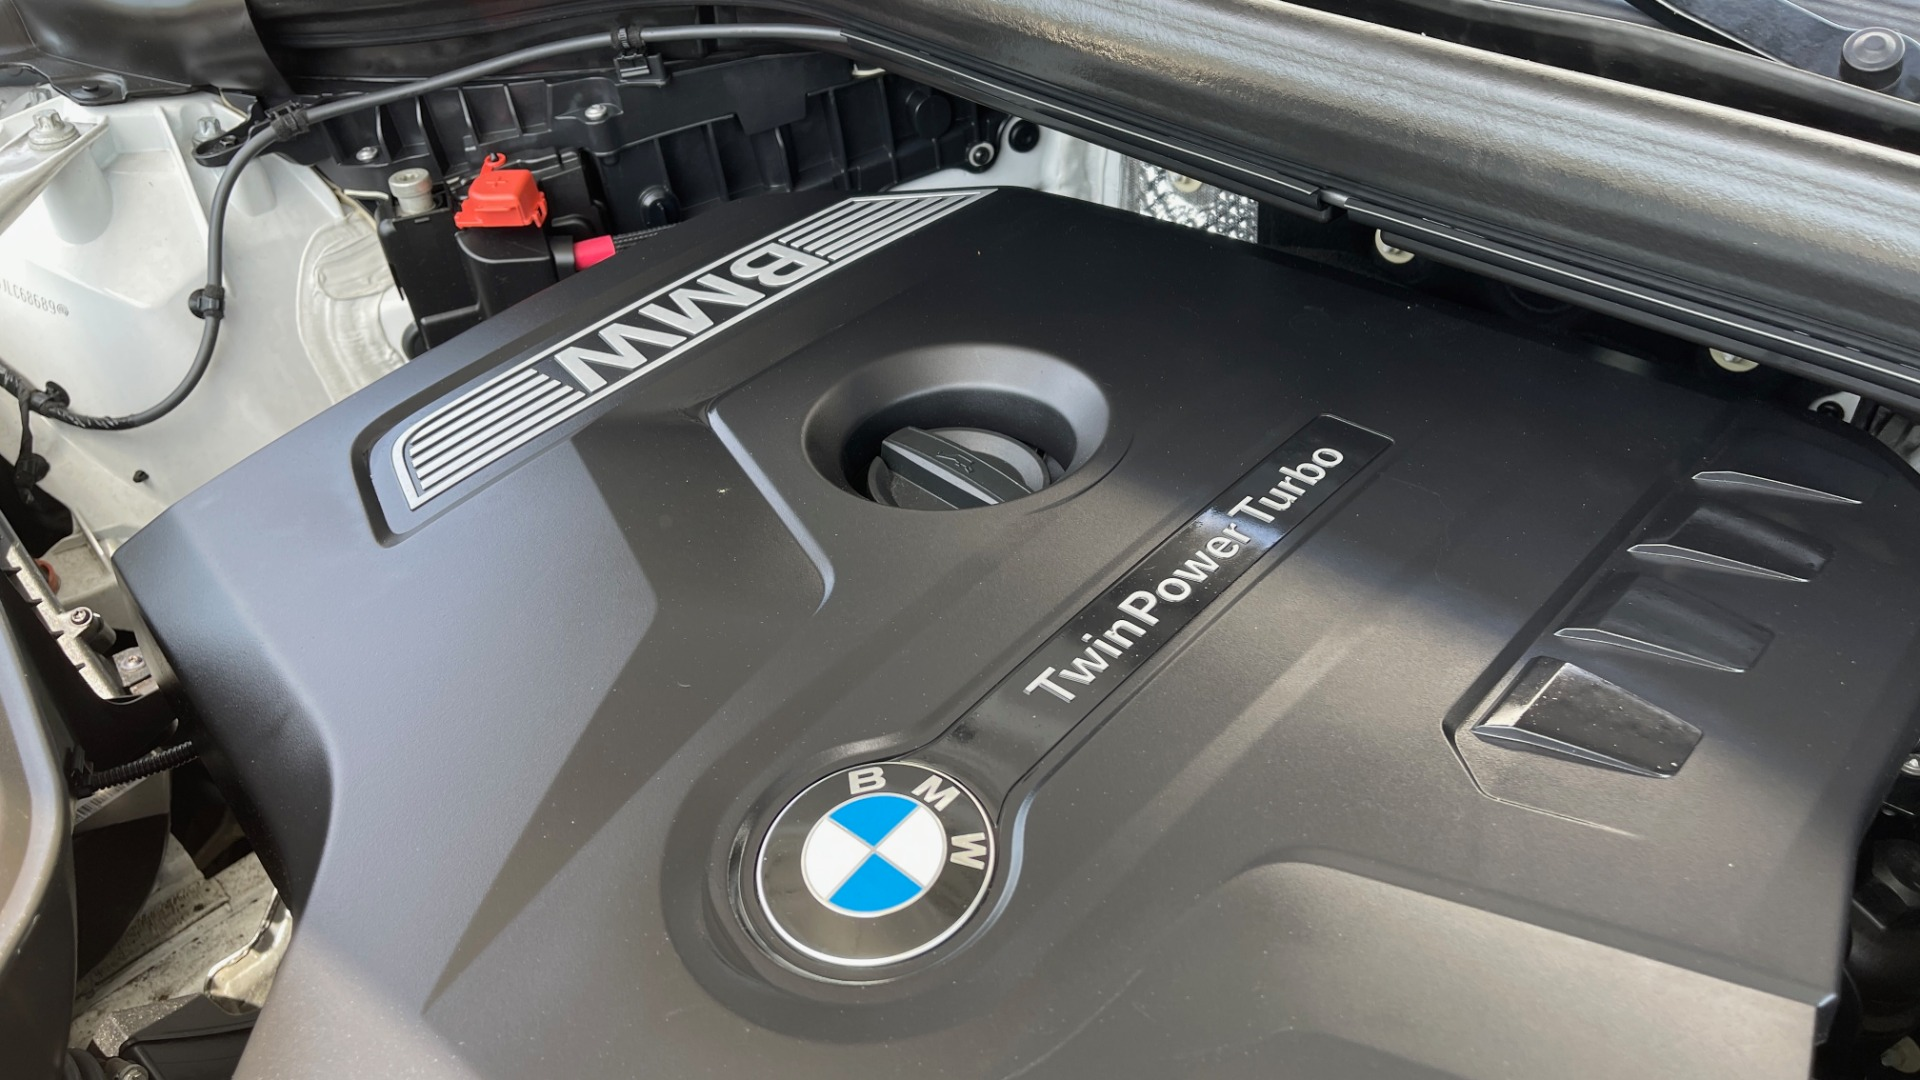 Used 2018 BMW X3 XDRIVE30I PREMIUM / NAV / DRVR ASST / CONV PKG / SUNROOF / REARVIEW for sale $32,695 at Formula Imports in Charlotte NC 28227 18